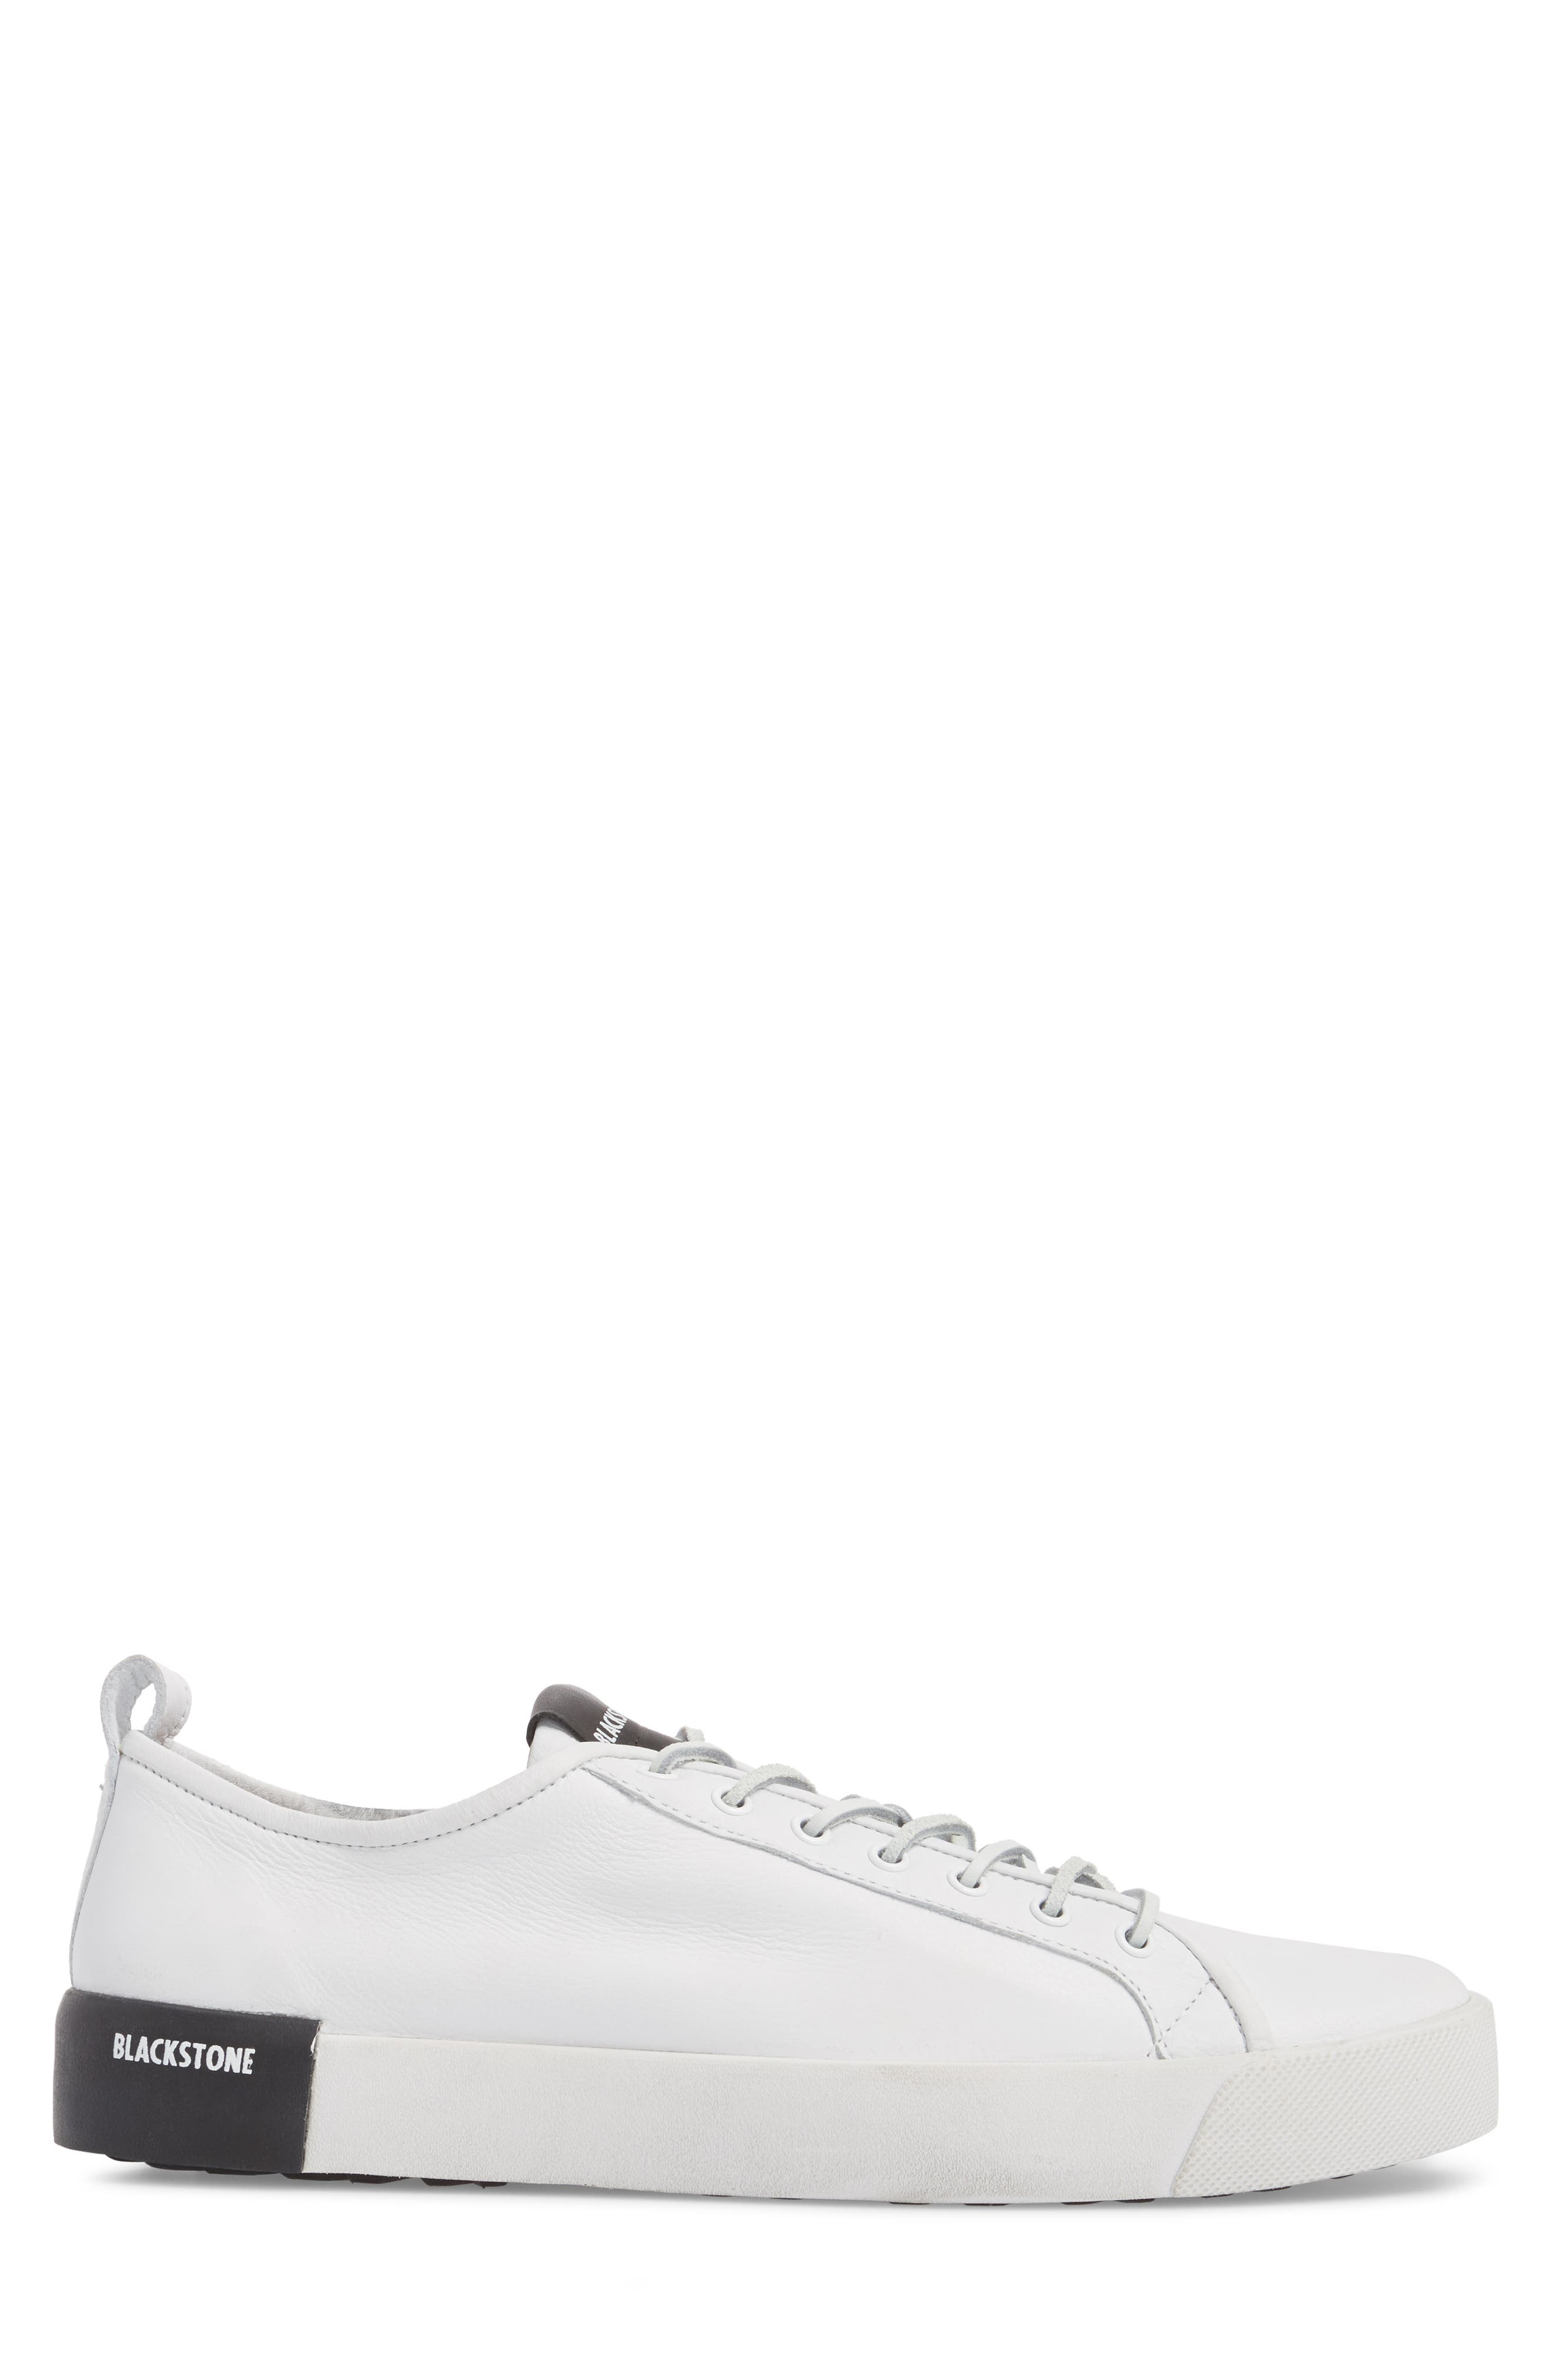 PM66 Low Top Sneaker,                             Alternate thumbnail 3, color,                             White Leather